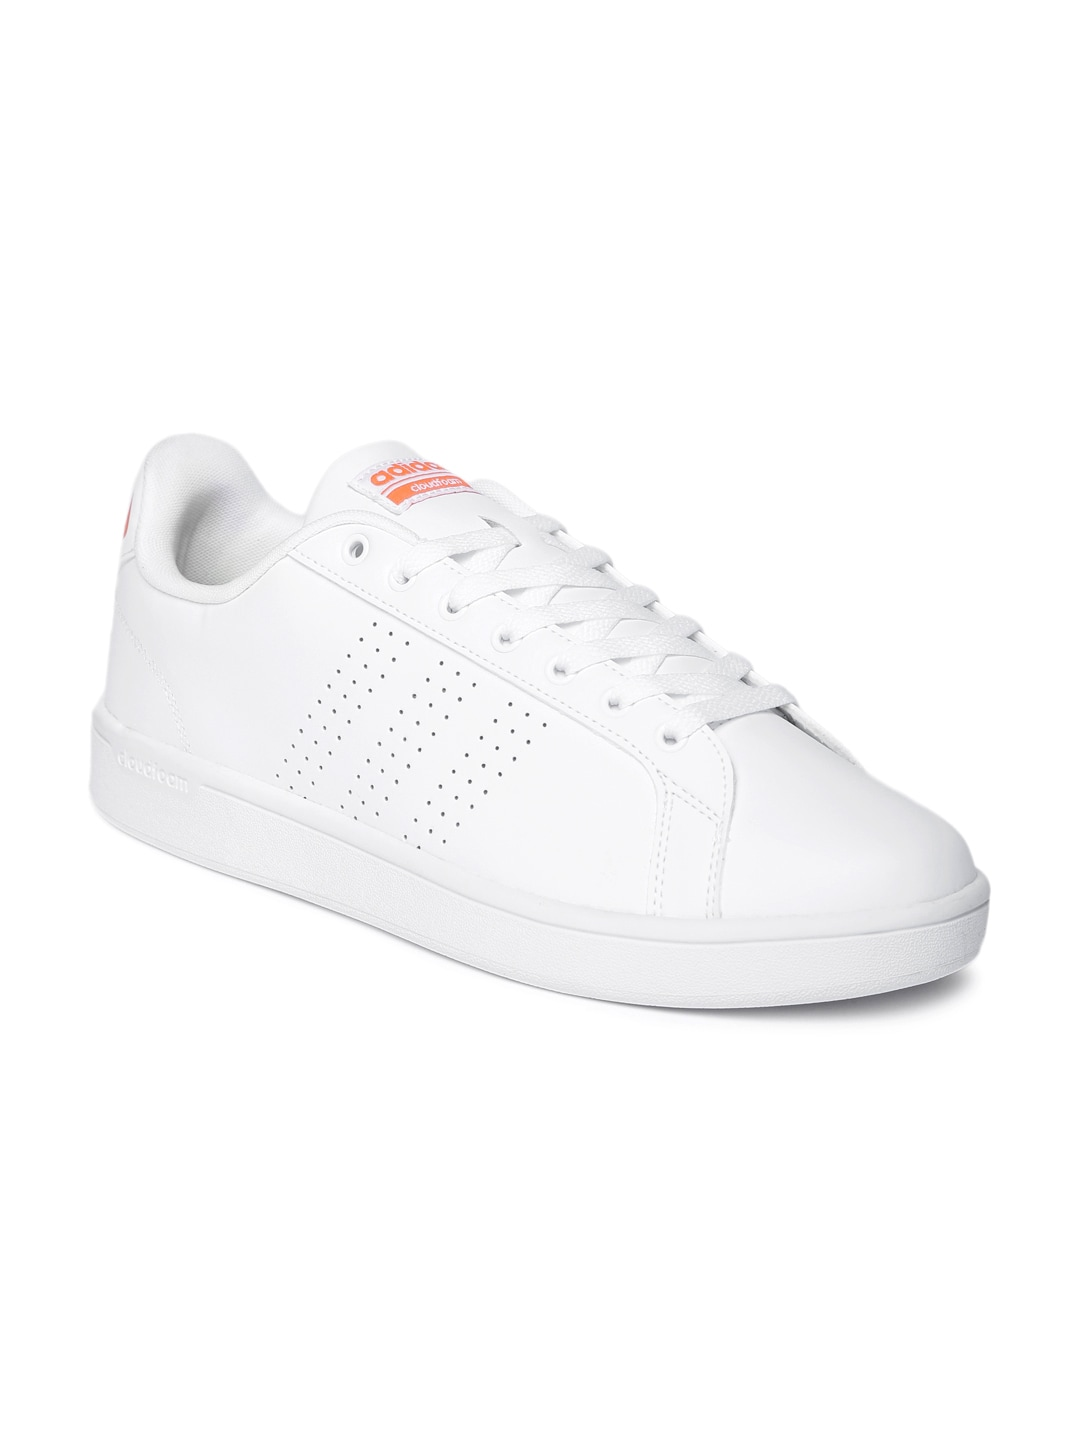 huge discount c6aa6 d90f3 Adidas aw3916 Neo Men White Leather Cloudfoam Advantage Clean Sneakers-  Price in India